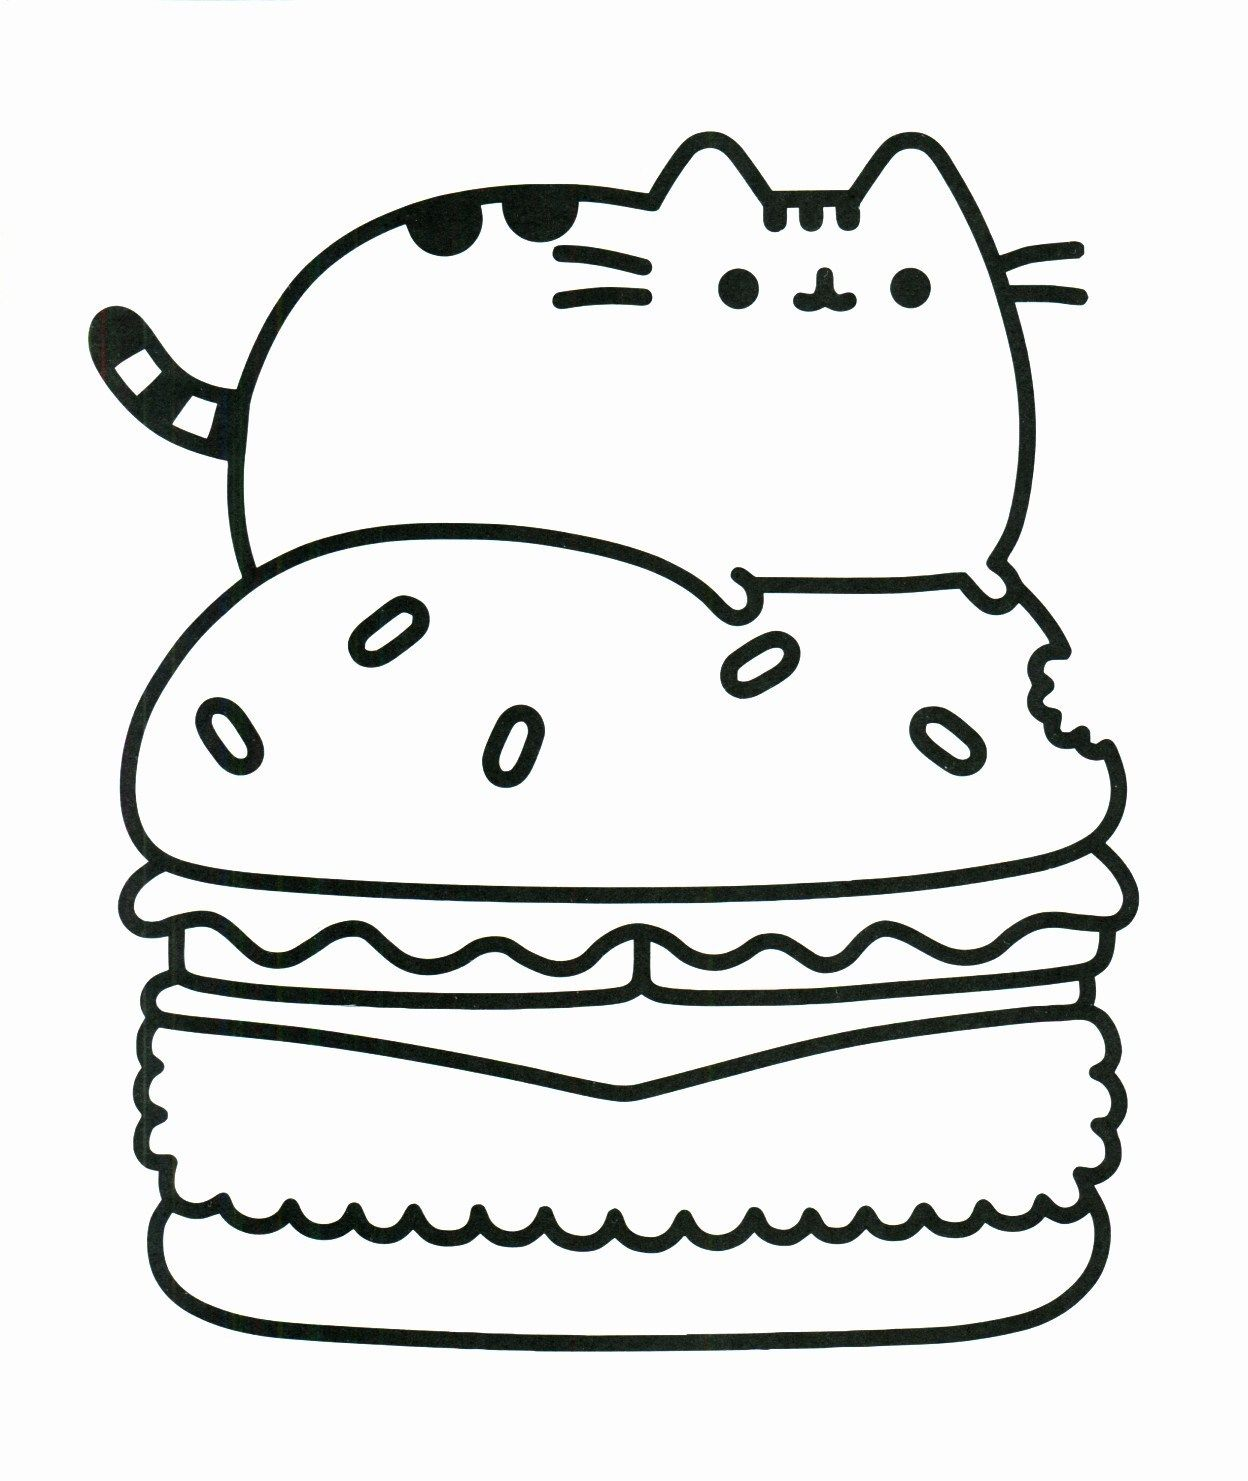 Pusheen Cat Coloring Pages Pusheen The Cat Coloring Pages New 147 Best Color Sheets For Kids Entitlementtrap Com Malvorlage Einhorn Malvorlagen Tiere Ausmalbilder